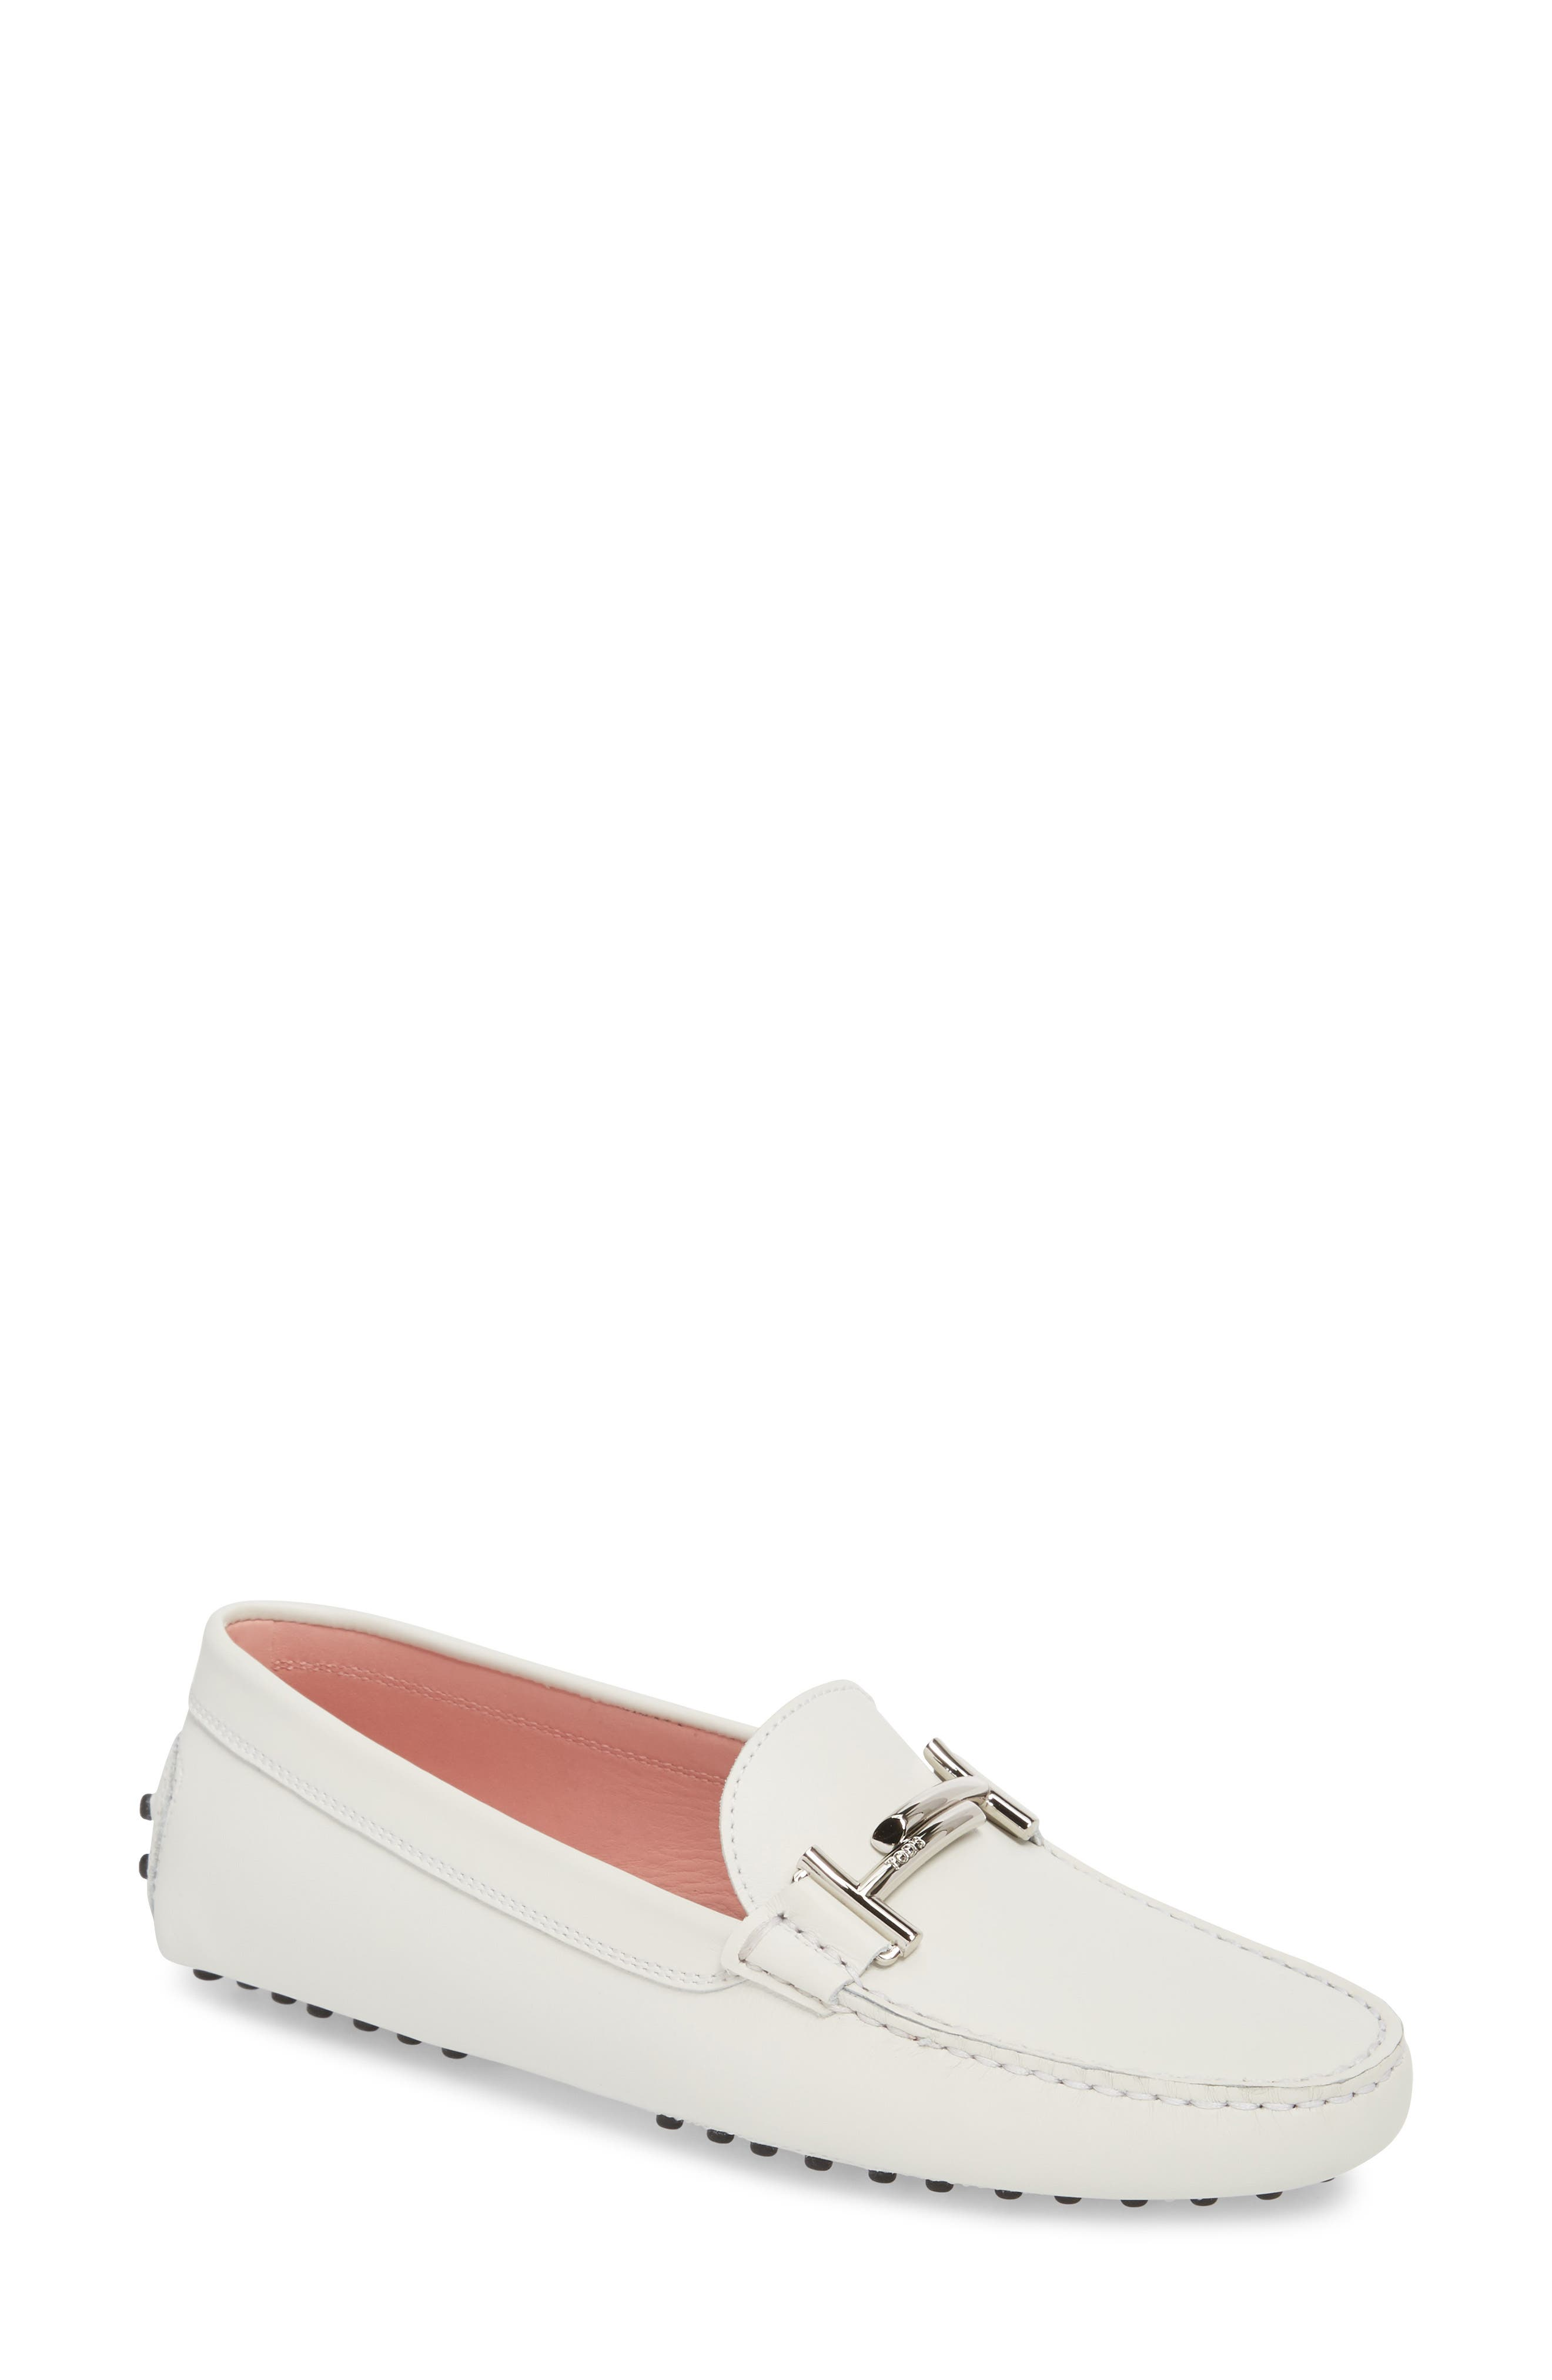 Gommini Double T Driving Moccasin in White